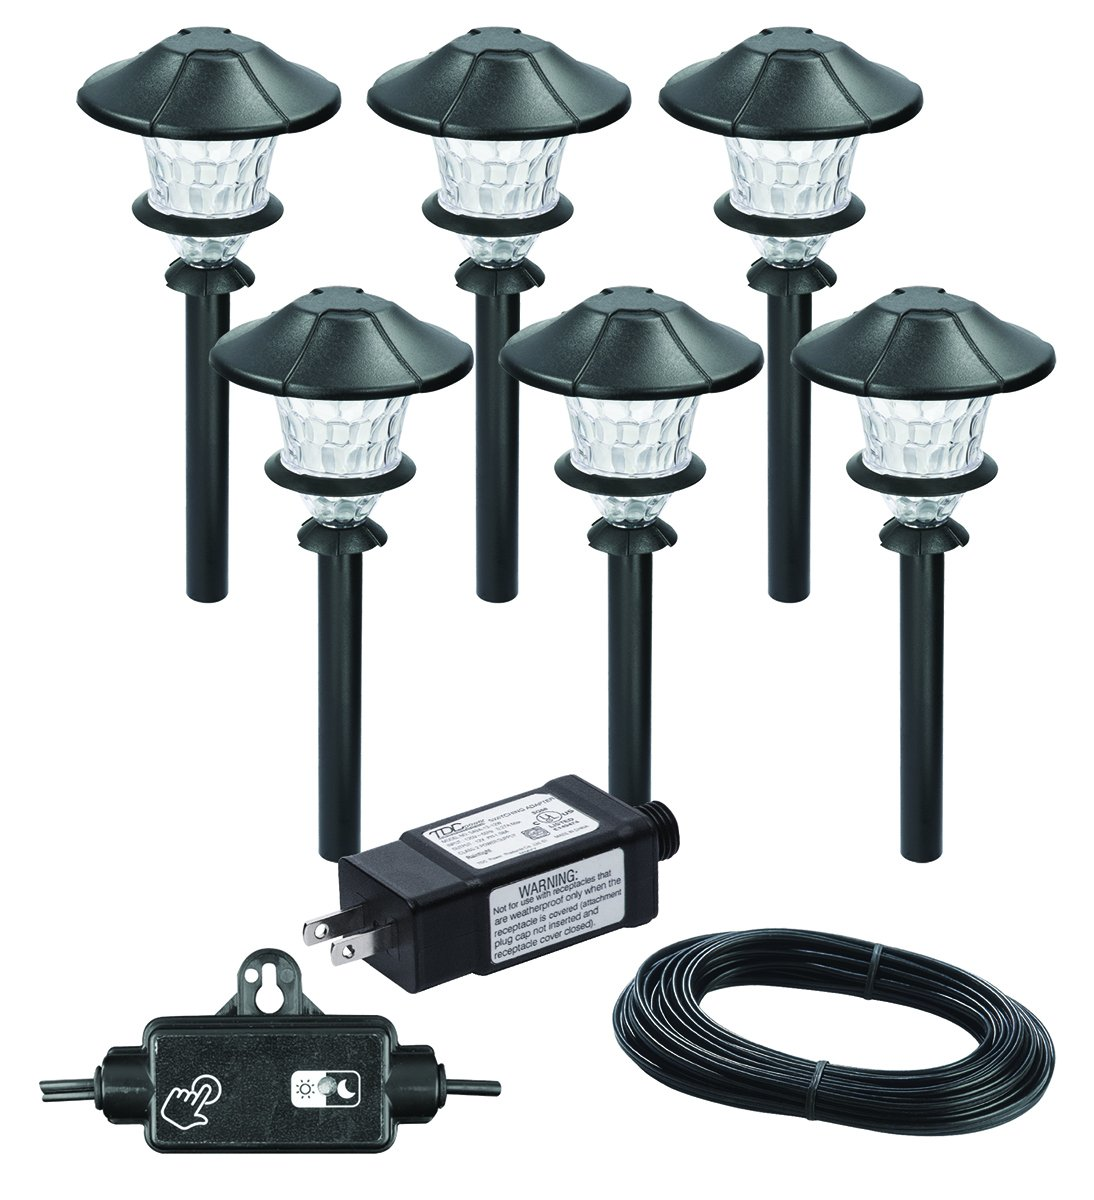 Paradise By Sterno Home Low Voltage Cast Aluminum 03w Led Path Light Kit 6 Pack Way Power Switch Route Fixture Fan Together Wiring Done Landscape Lights